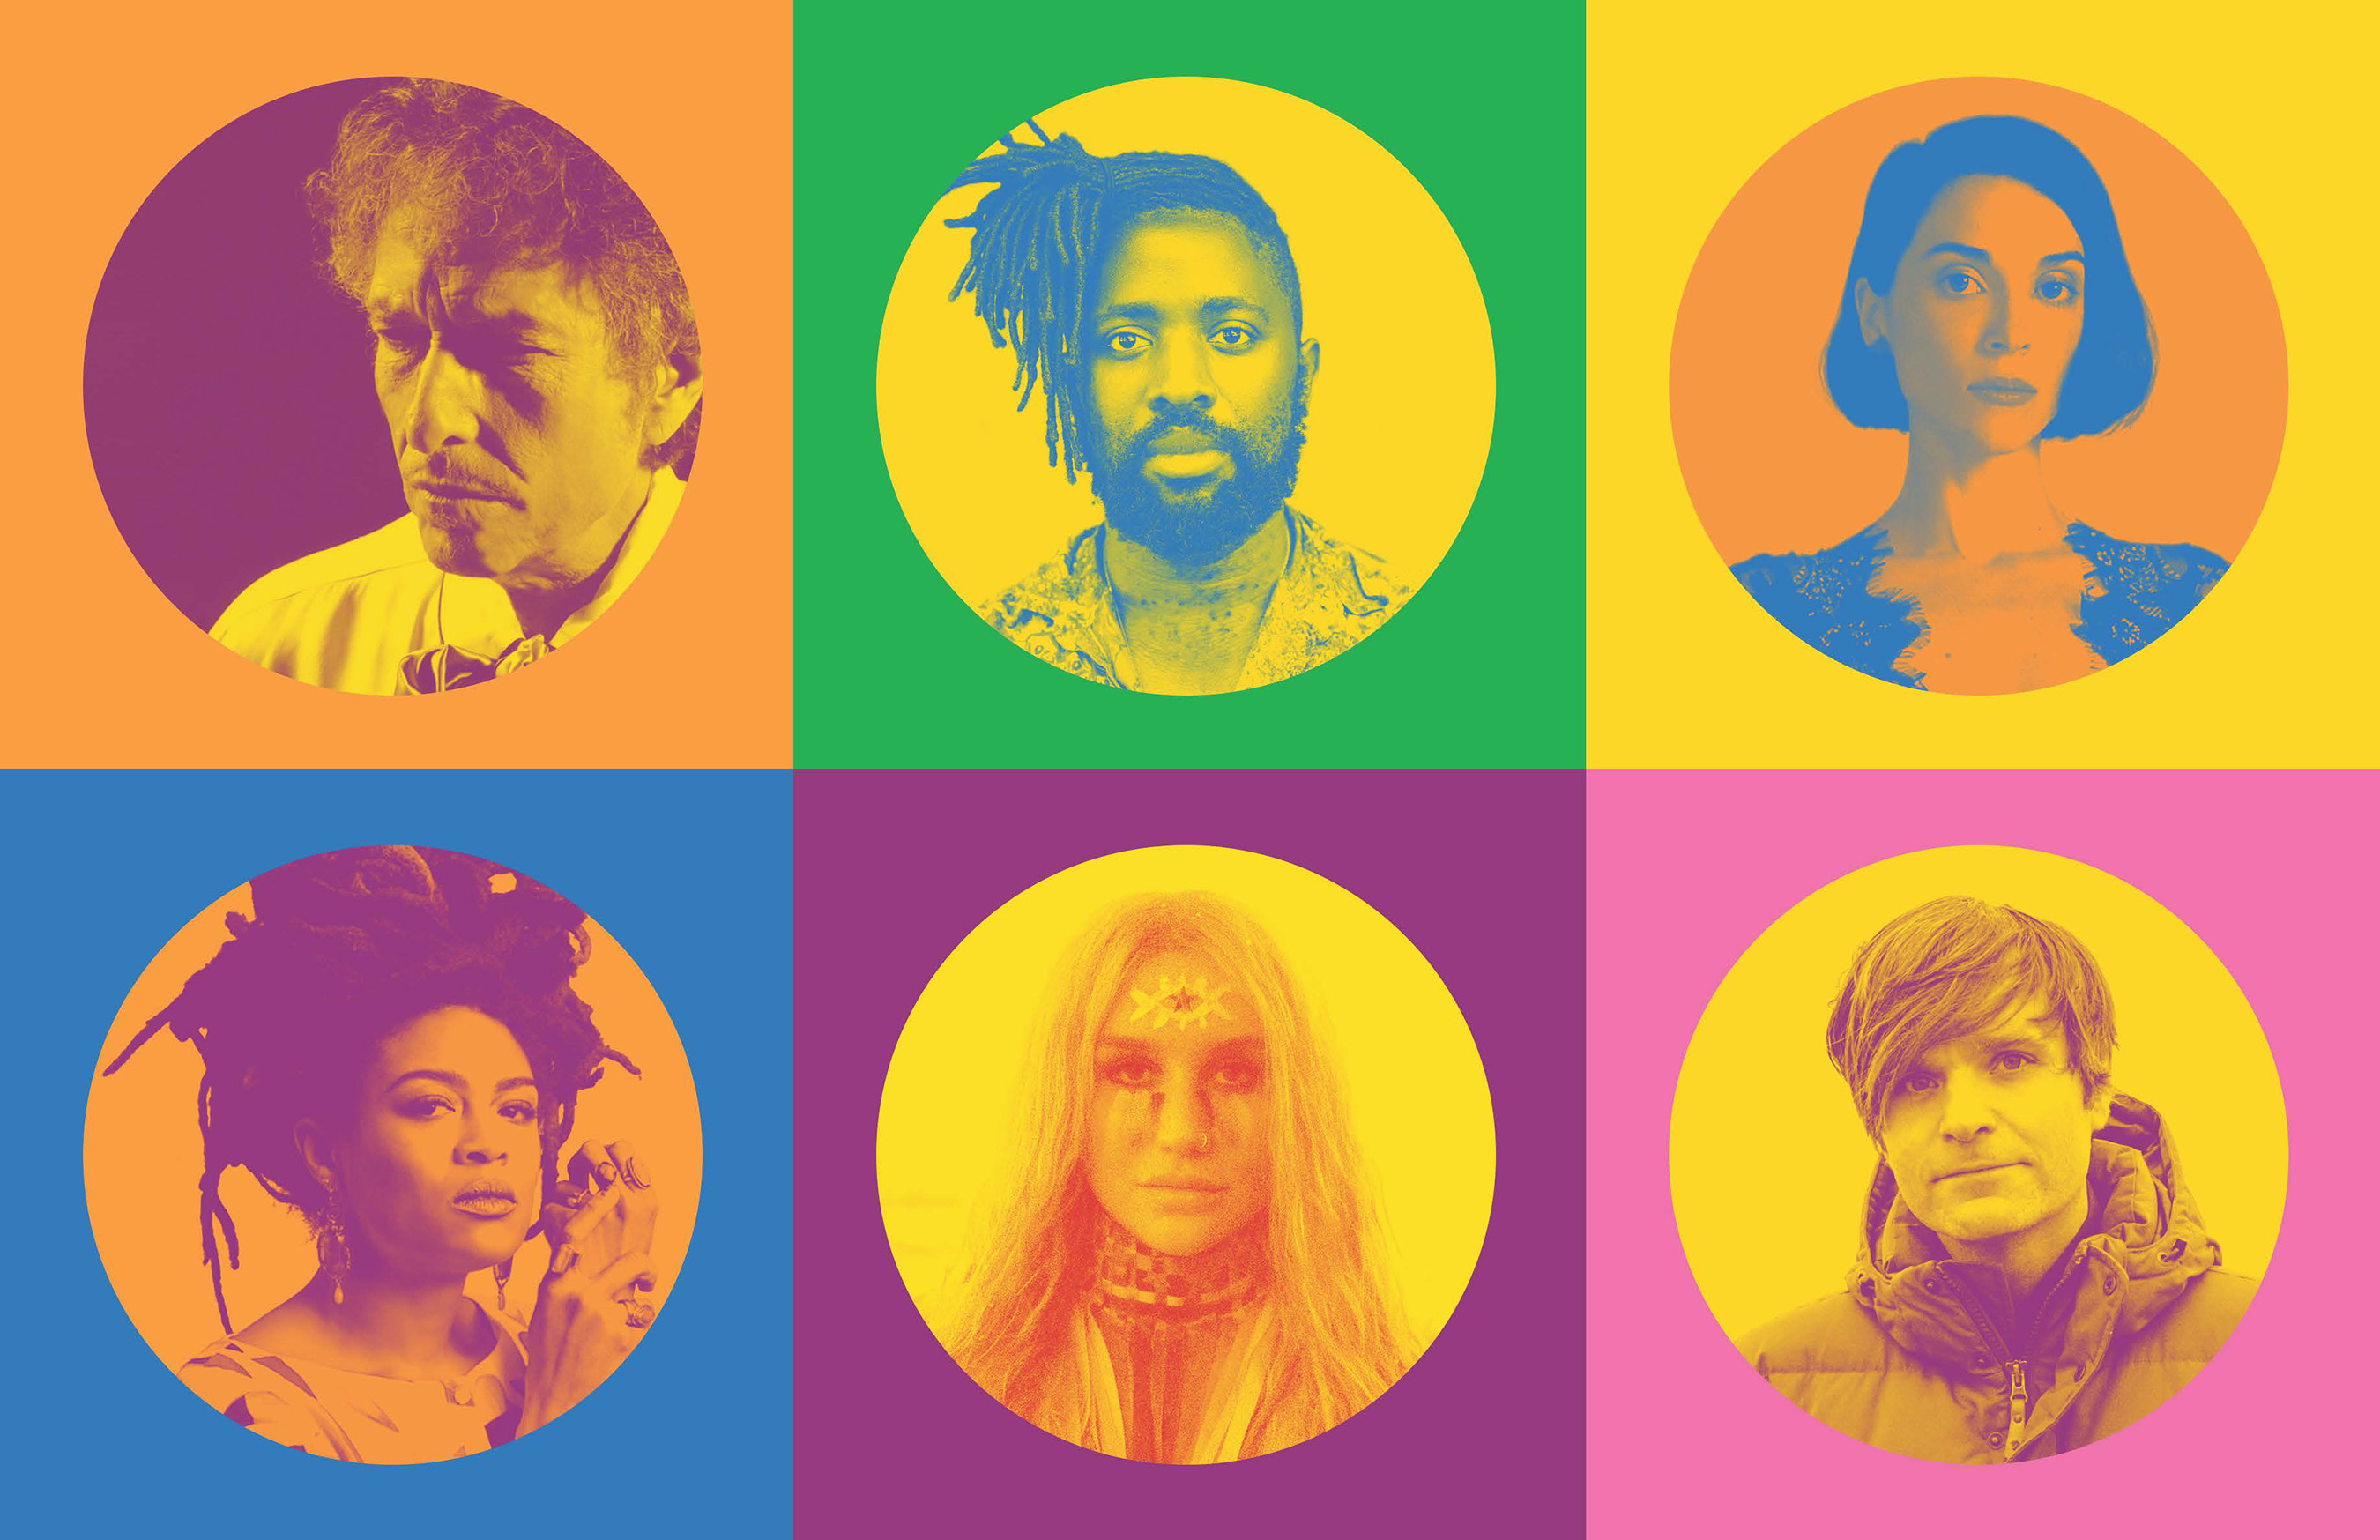 MGM Resorts releases UNIVERSAL LOVE, a collection of reimagined love songs for the LGBTQ community featuring Bob Dylan, Kesha, Benjamin Gibbard, St. Vincent, Valerie June and Kele Okerek